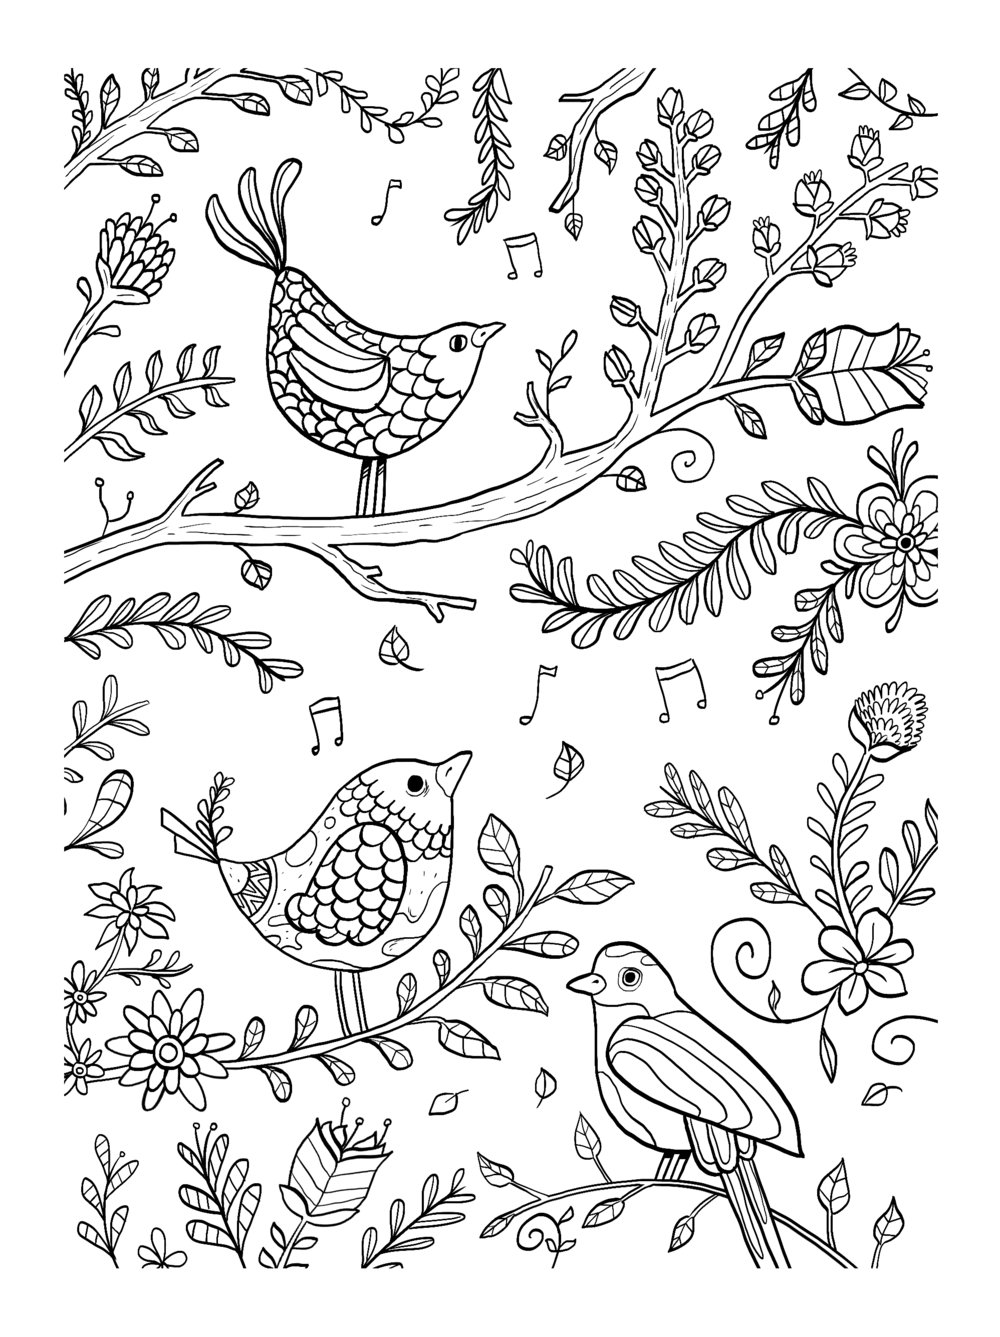 birds and flowers.jpg